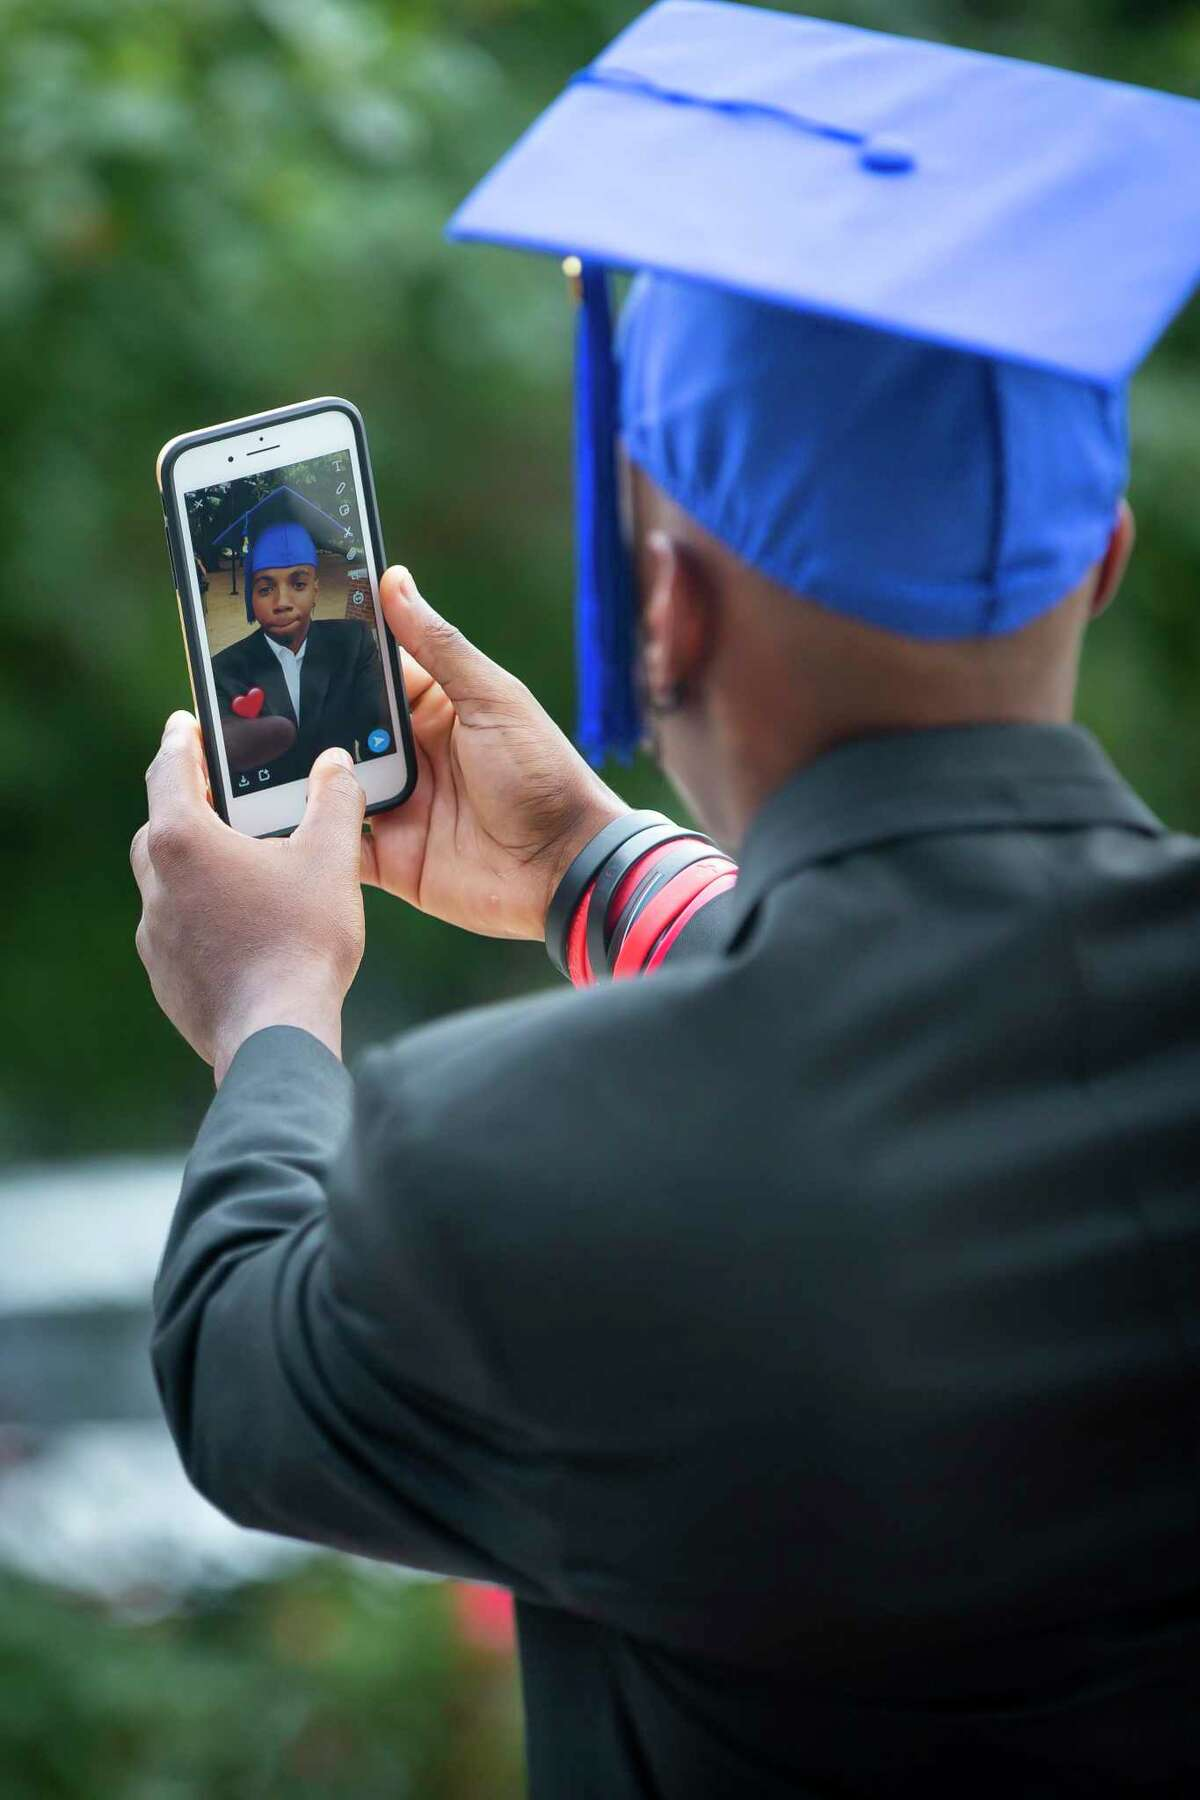 Oronde Sinclair poses for a selfie in a graduation cap during a graduation celebration organized by Child Protective Services on Sunday, May 31, 2020. Seniors donned their caps and gowns for a personal photo shoot to commemorate their achievement.